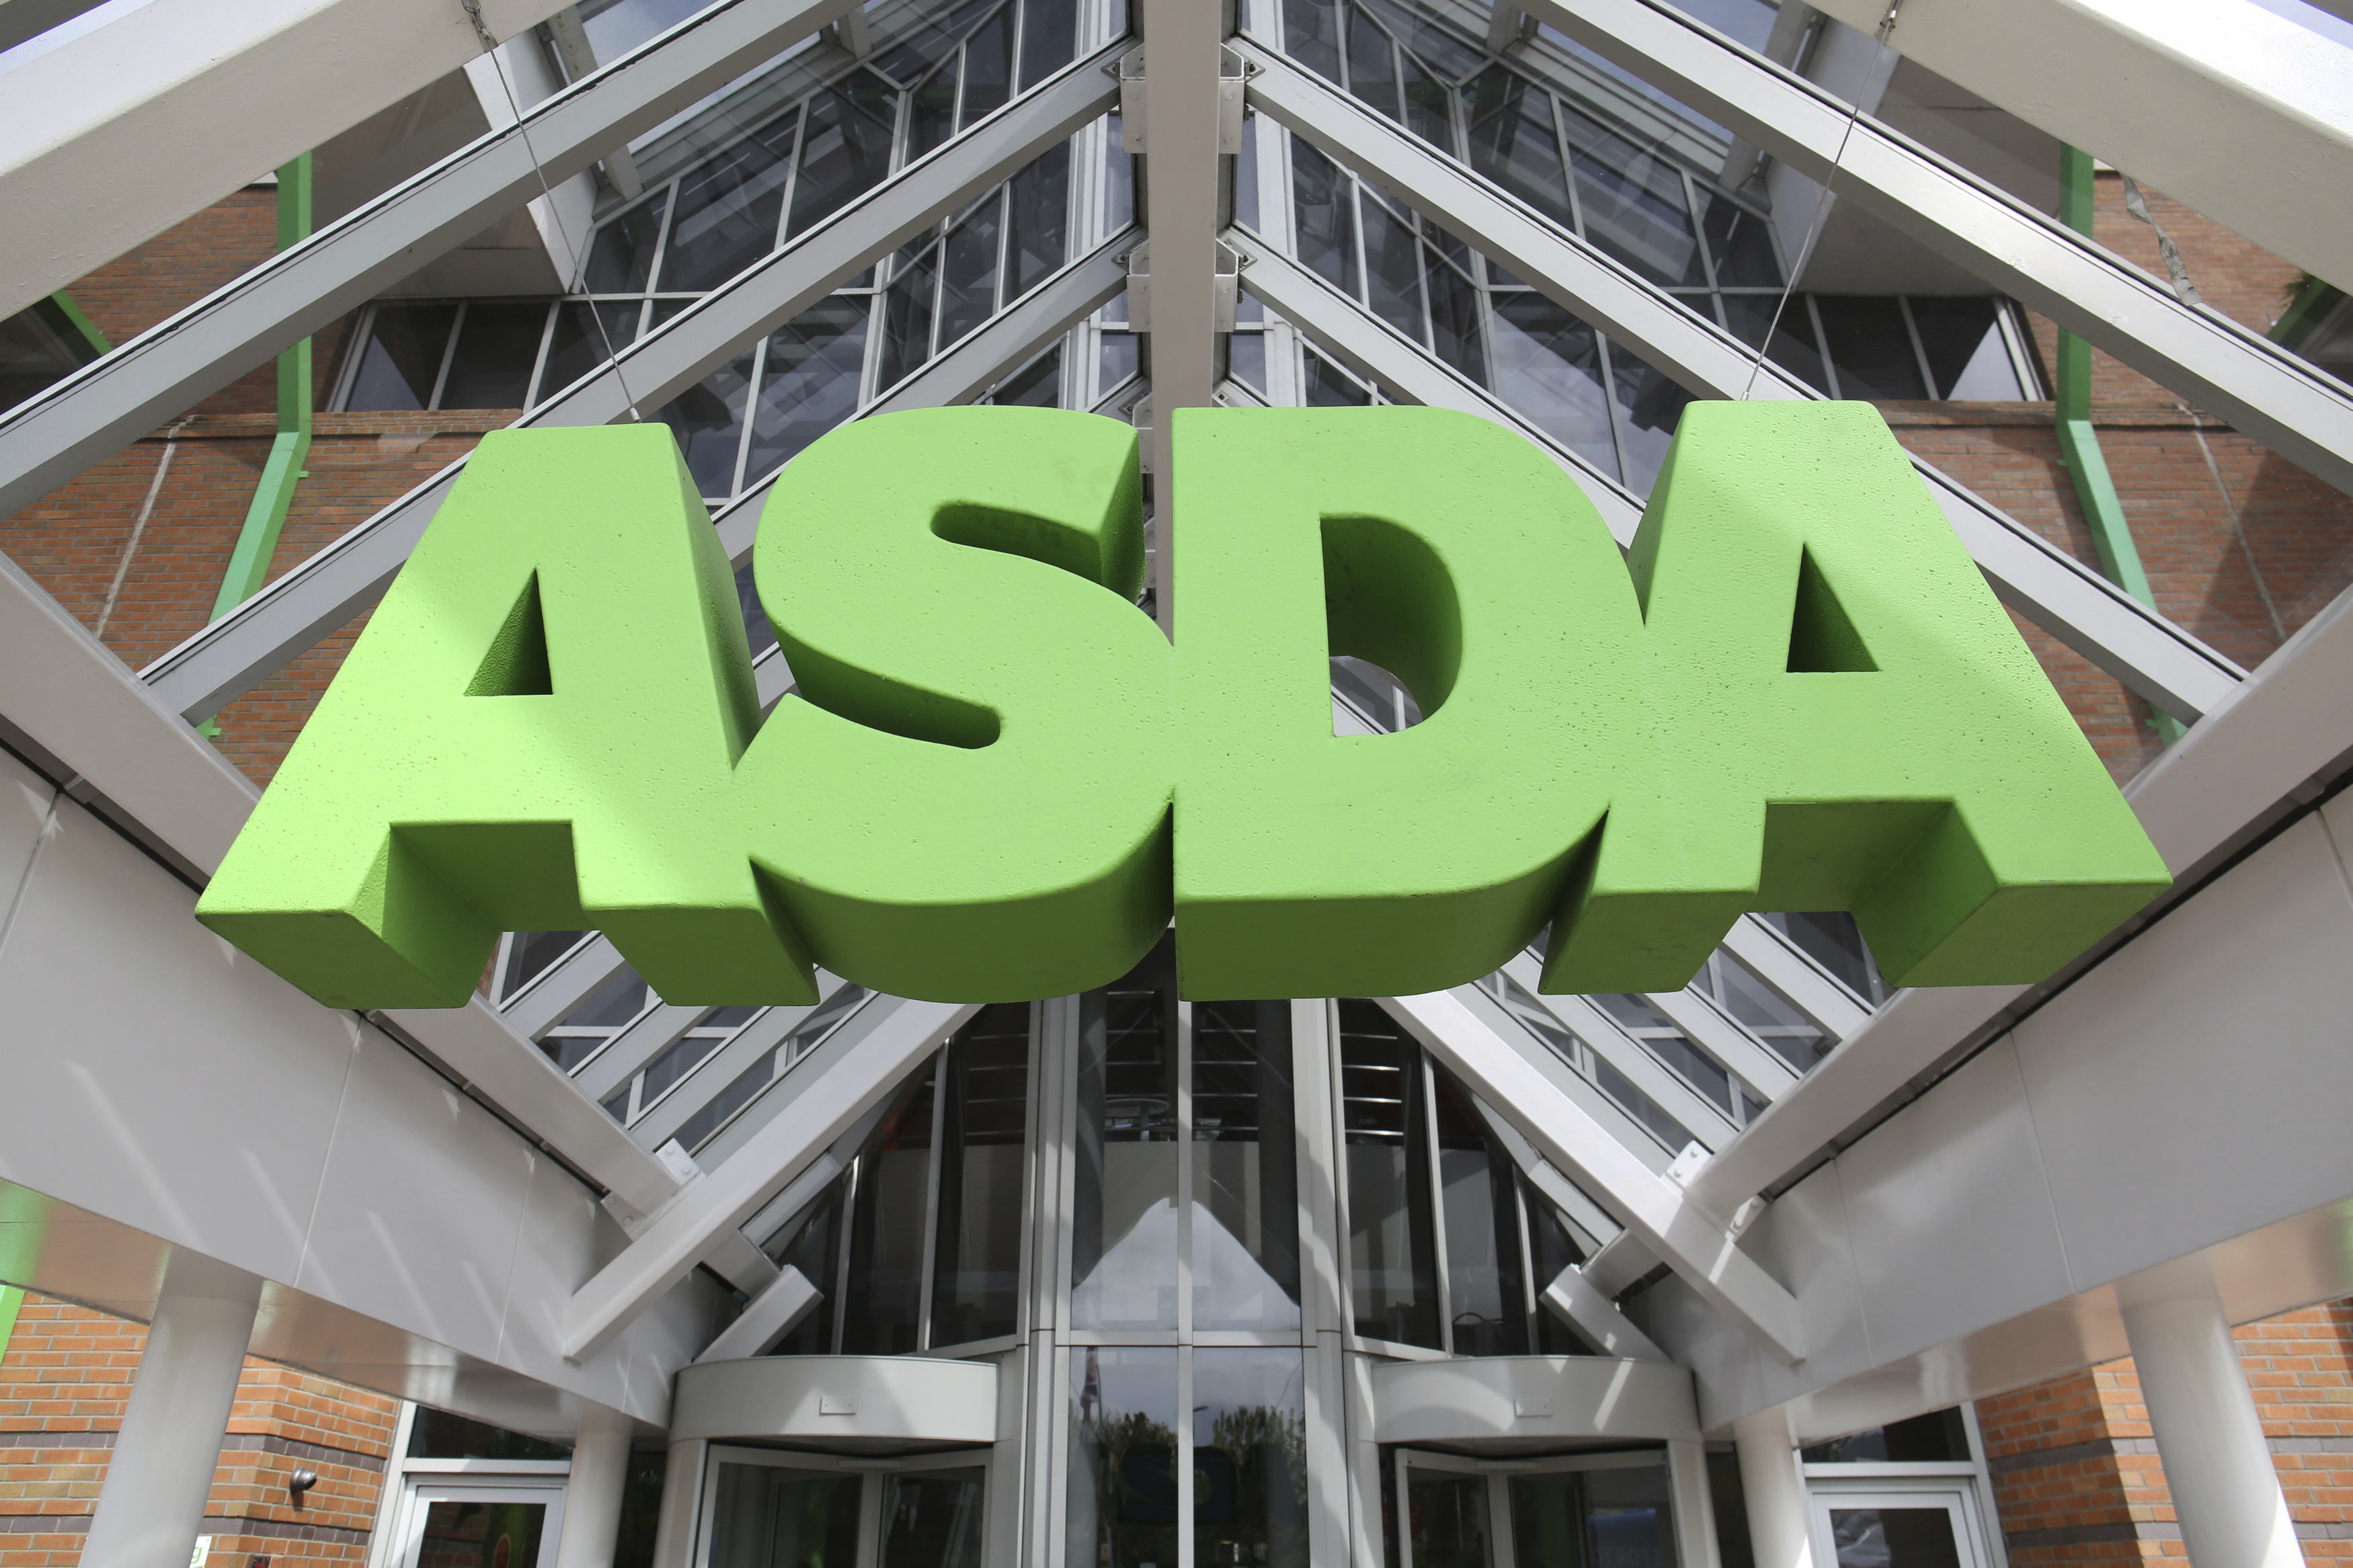 """Asda concerns. File photo dated 01/05/15 of an Asda sign. Asda's US owner has said it is """"seriously considering"""" a stock market flotation for the UK supermarket after the chain's deal to merge with rival Sainsbury's was blocked. Issue date: Wednesday May 15, 2019. Walmart - the world's biggest retailer - told Asda managers at an event on Tuesday it was mulling listing Asda, but that any preparations would """"take years"""". See PA story CITY Asda. Photo credit should read: Chris Radburn/PA Wire URN:42878219 (Press Association via AP Images)"""